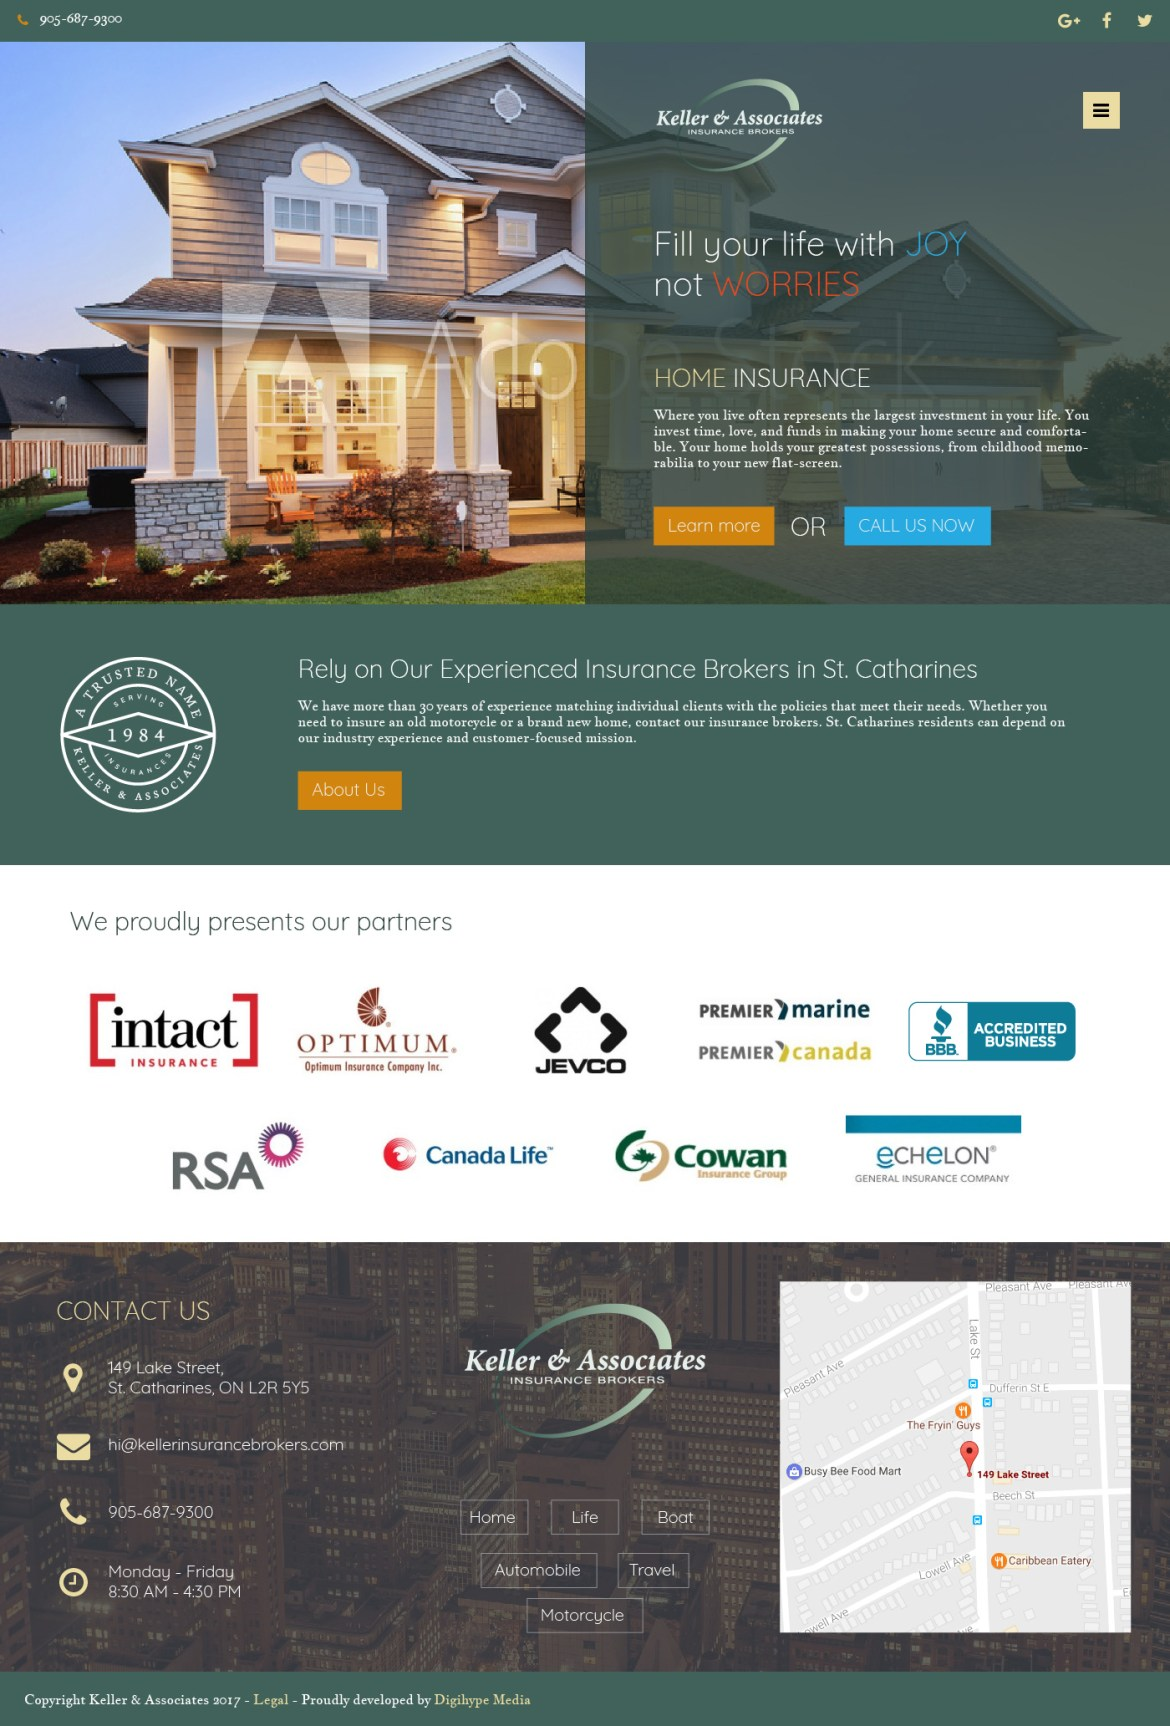 Home, Life and Car Insurance company Niagara Falls (Website design mockup)